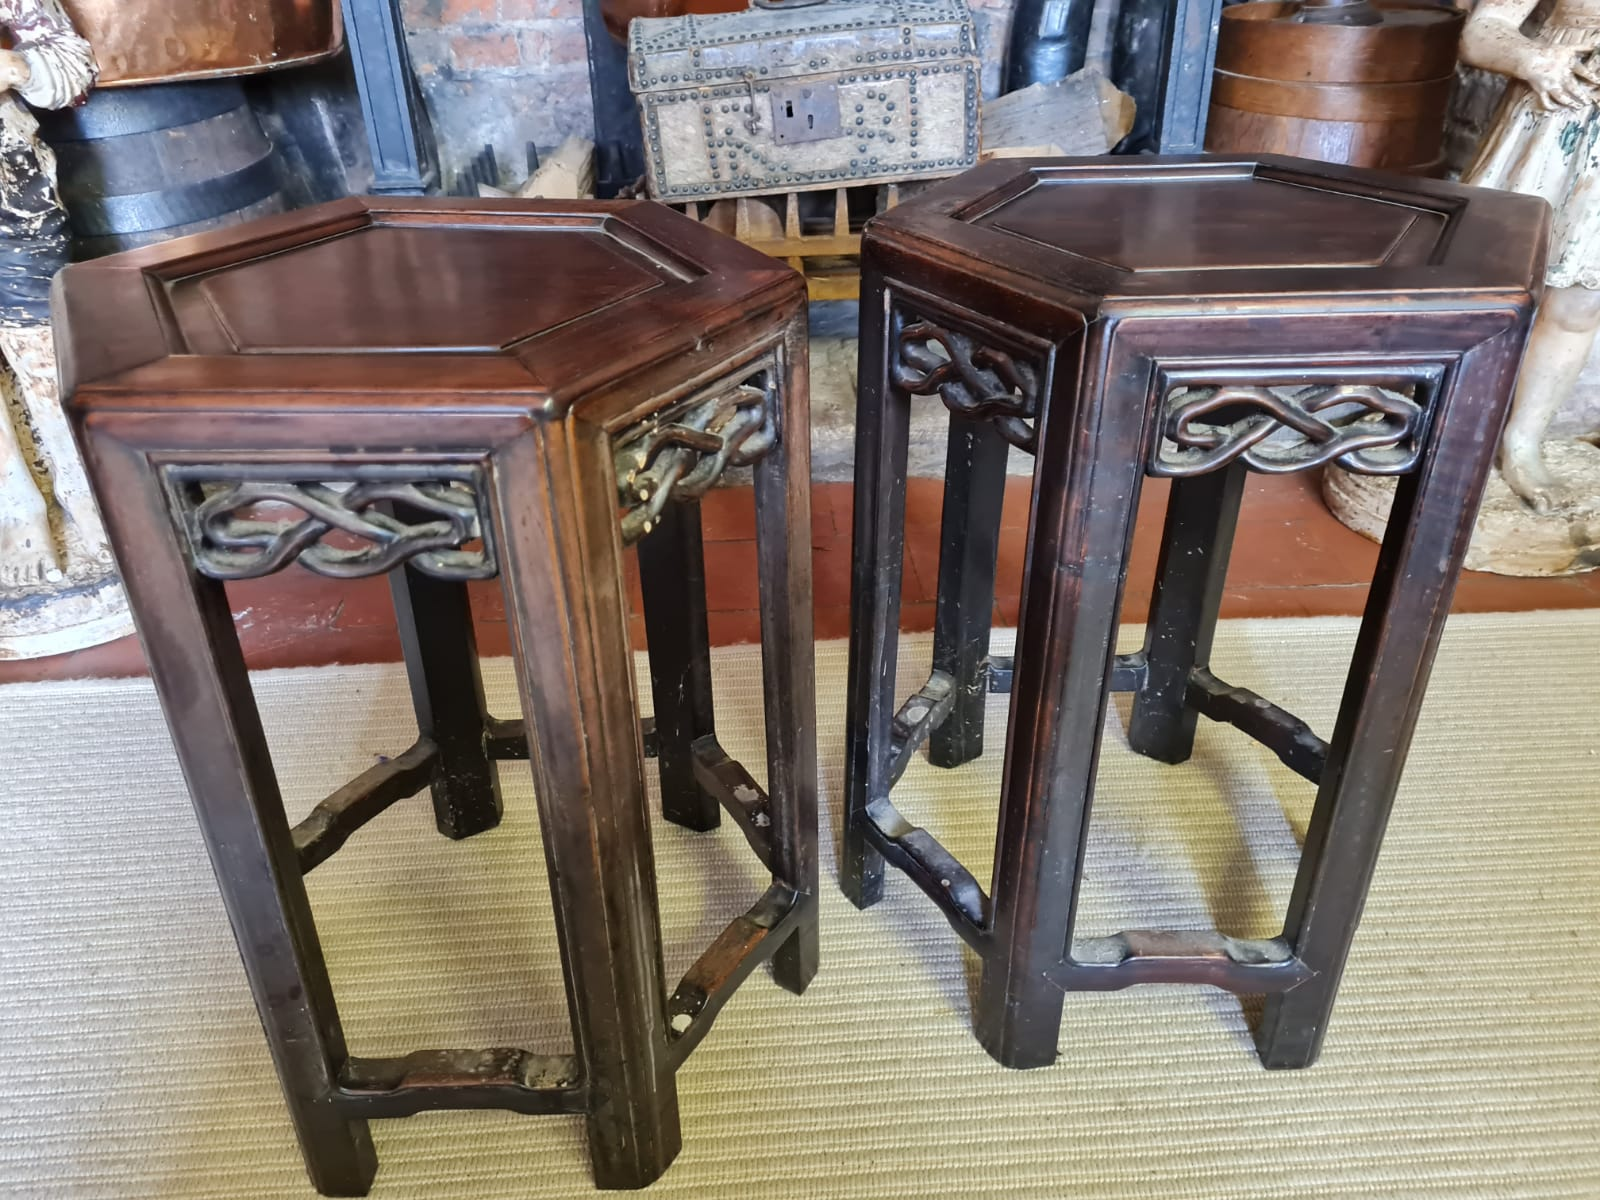 A PAIR OF 19TH CENTURY CHINESE HARDWOOD HEXAGONAL OCCASIONAL TABLES With pierced fretwork apron, - Image 2 of 3